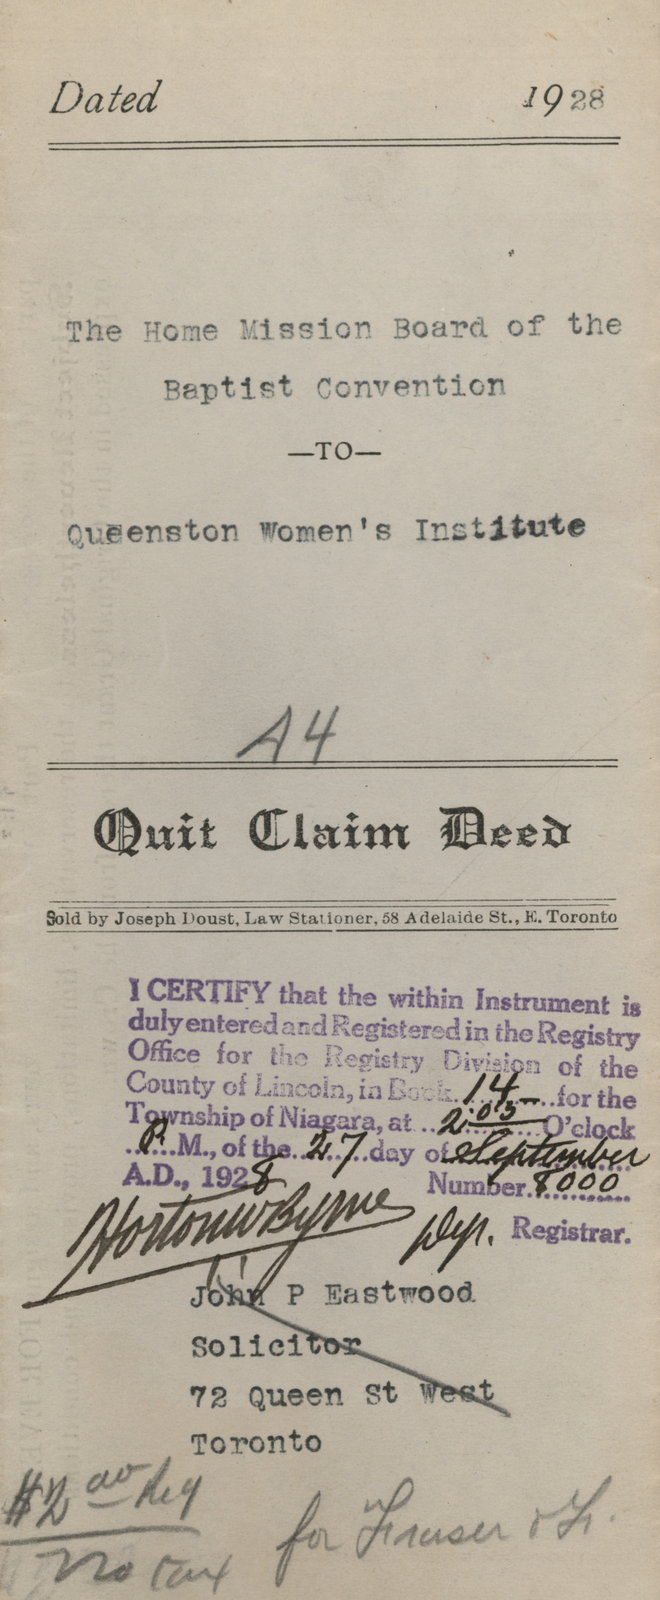 Quit Claim Deed between the Home Mission Board of the Baptist Convention and Queenston Women's Institute